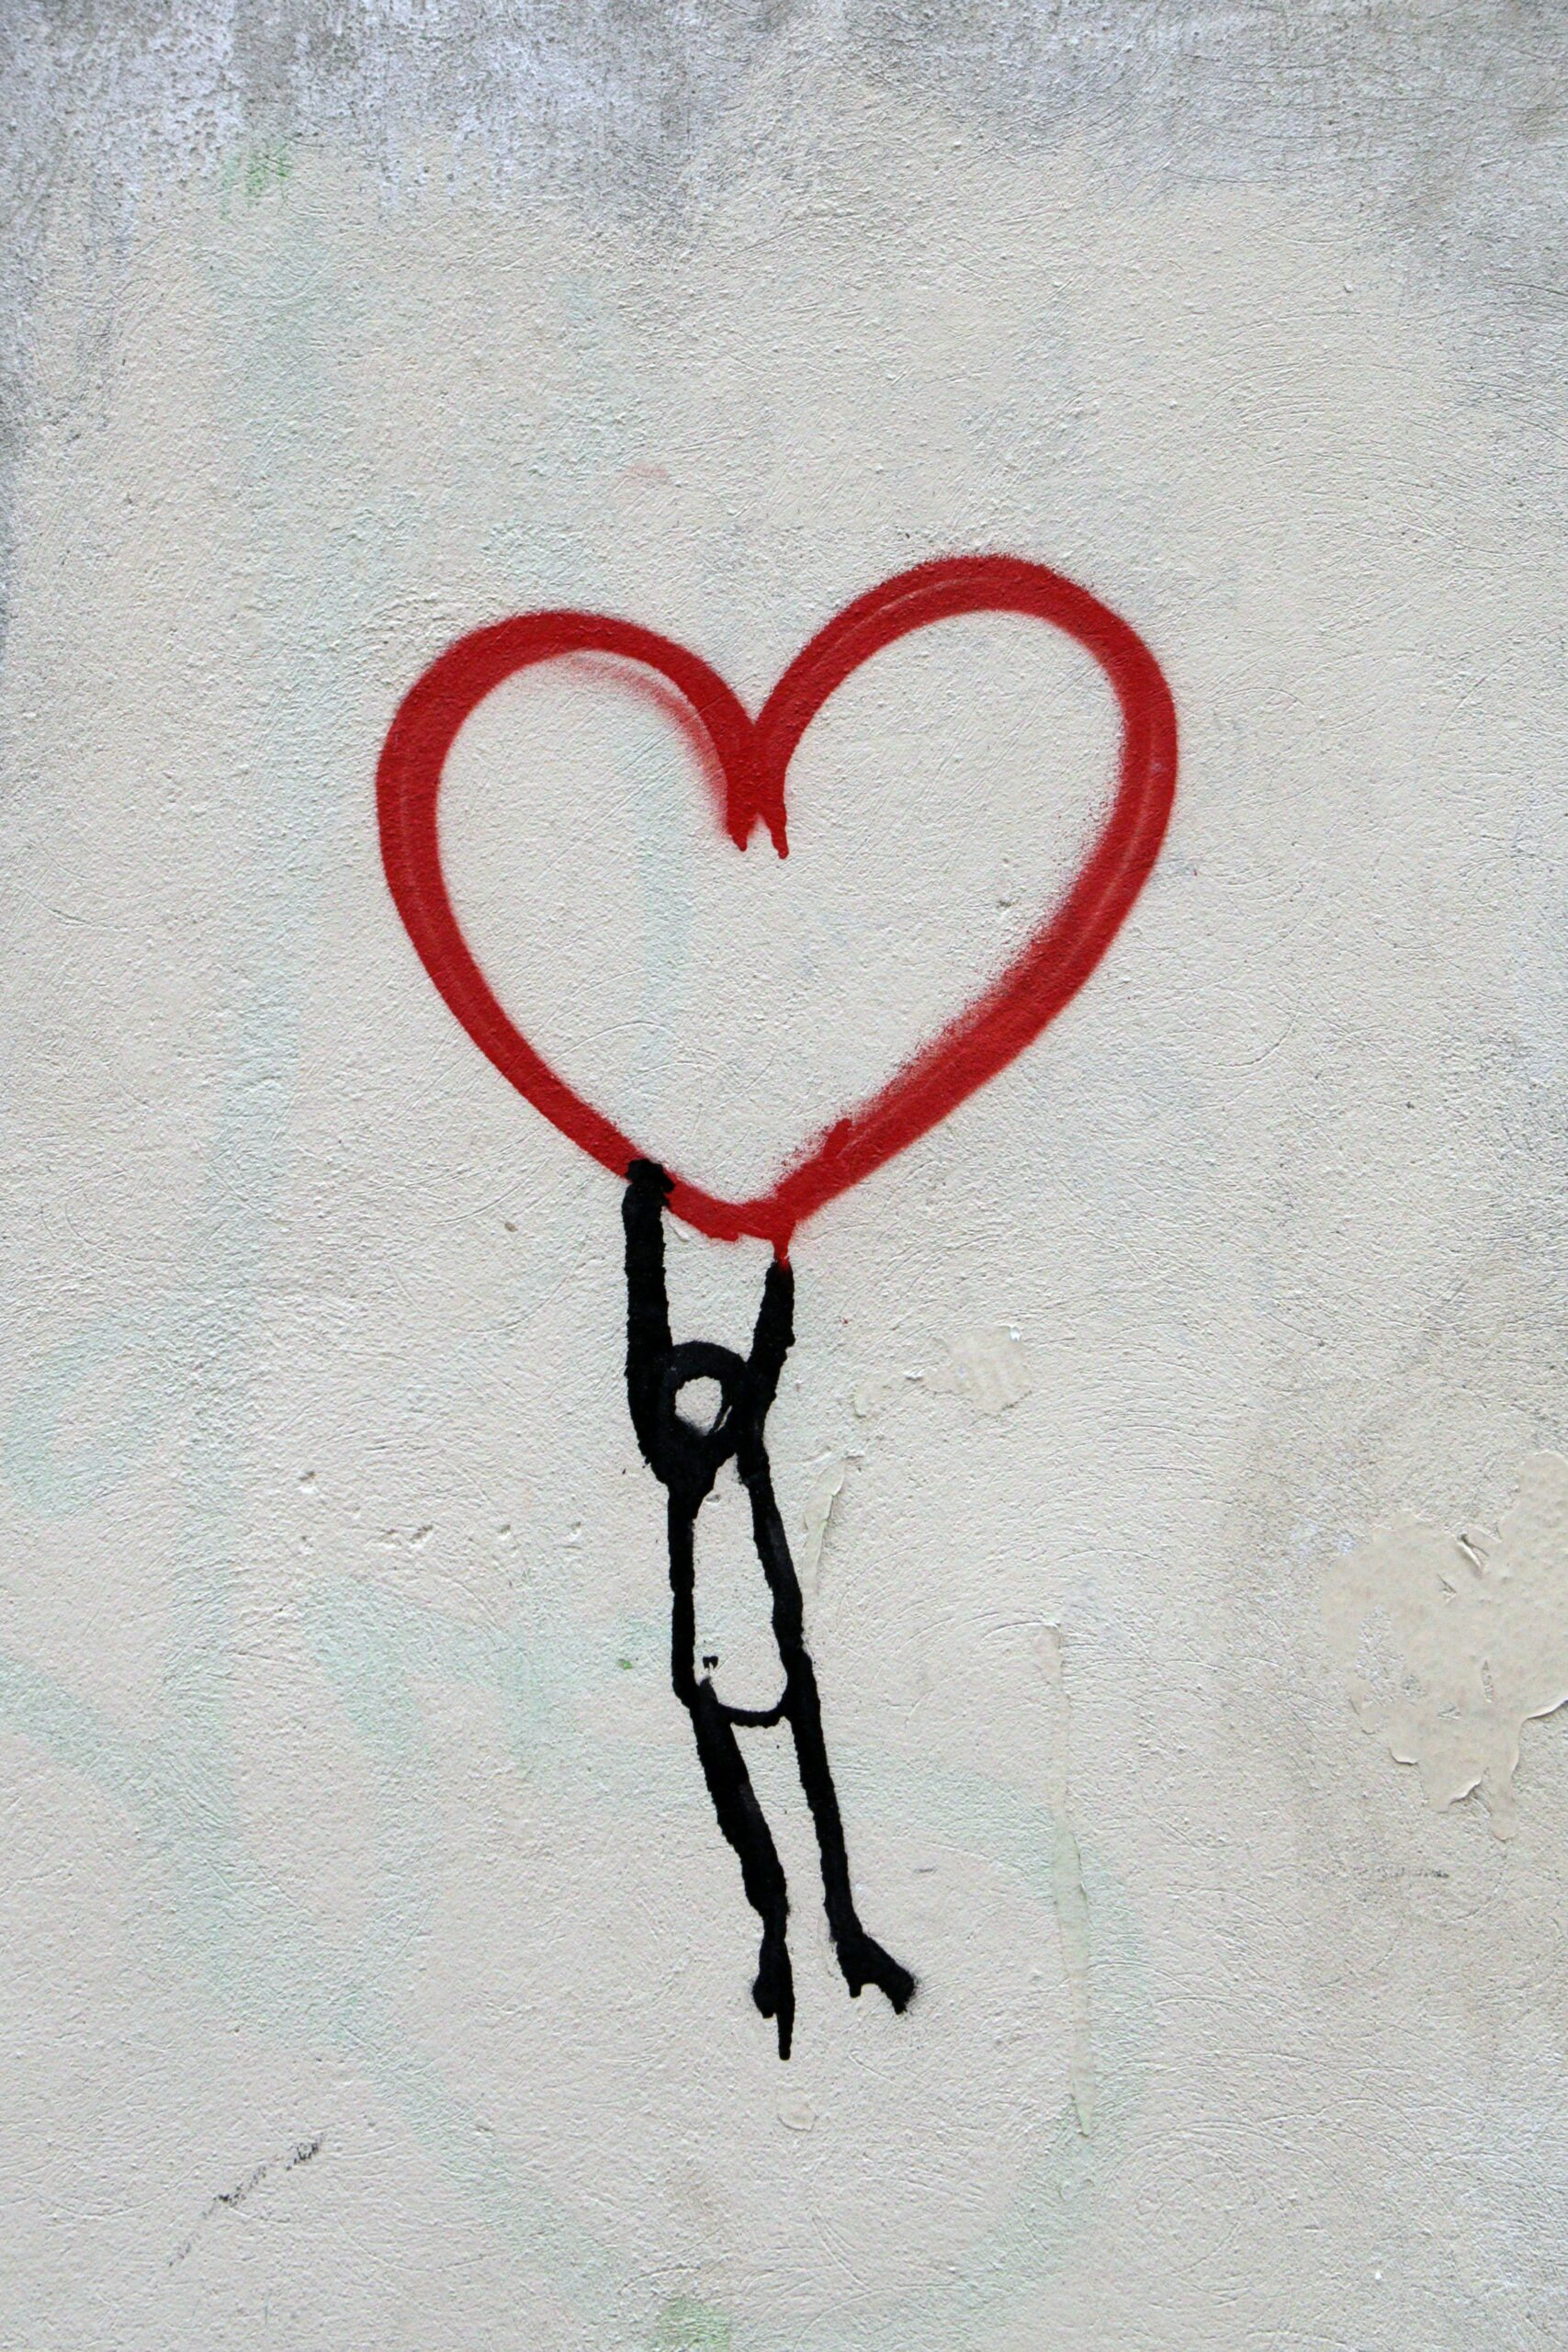 graffiti person being lifted by a red heart self care self love